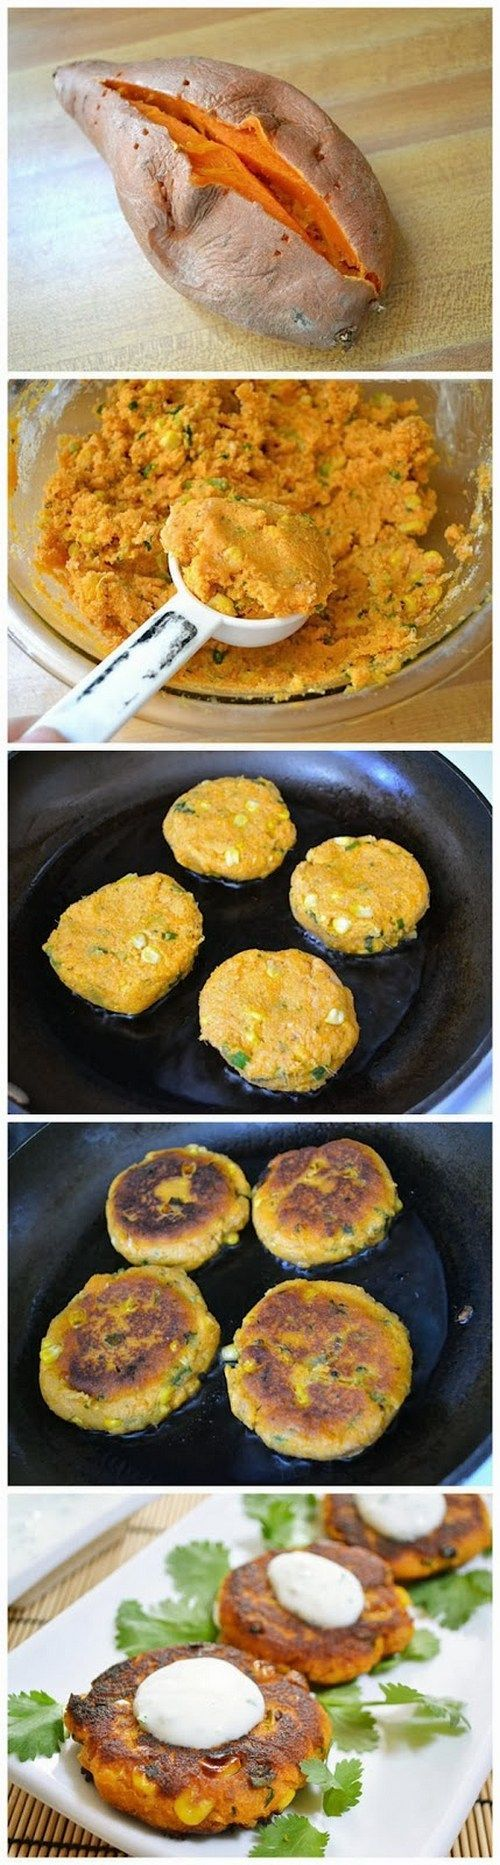 Sweet potato corn cakes with garlic dipping sauce. #food #cake